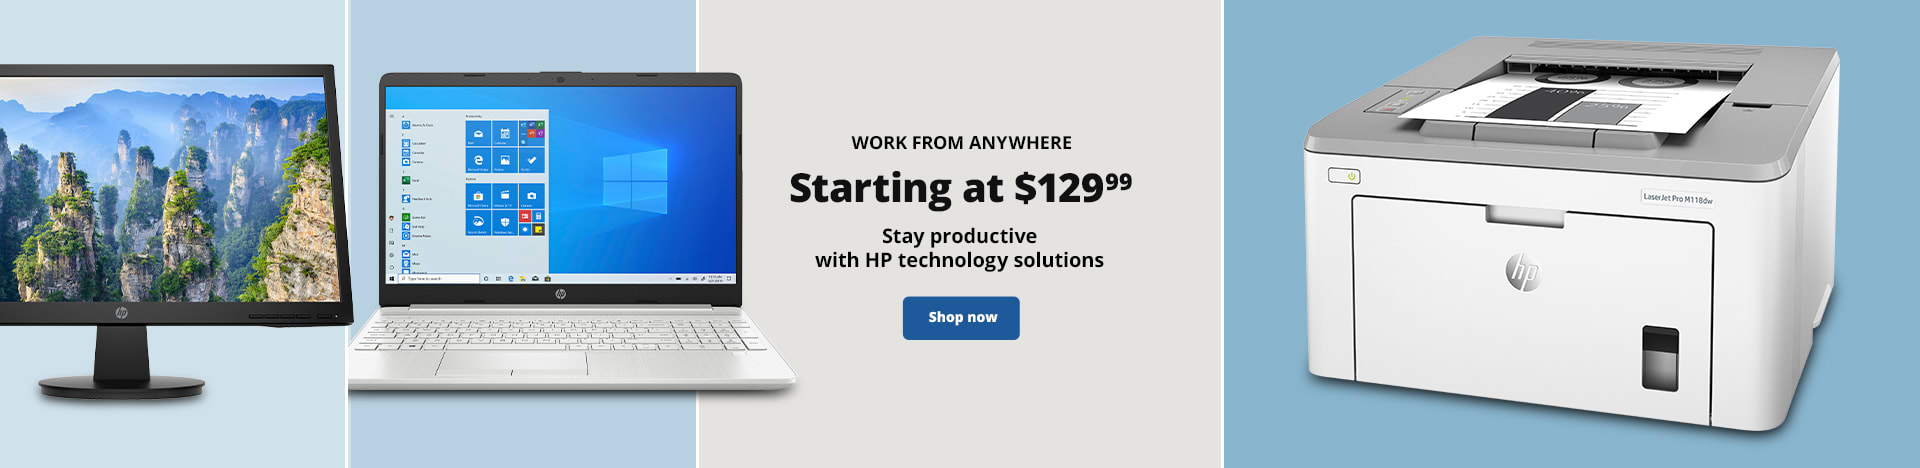 Work From Anywhere. Starting at $129.99. Stay productive with HP technology solutions